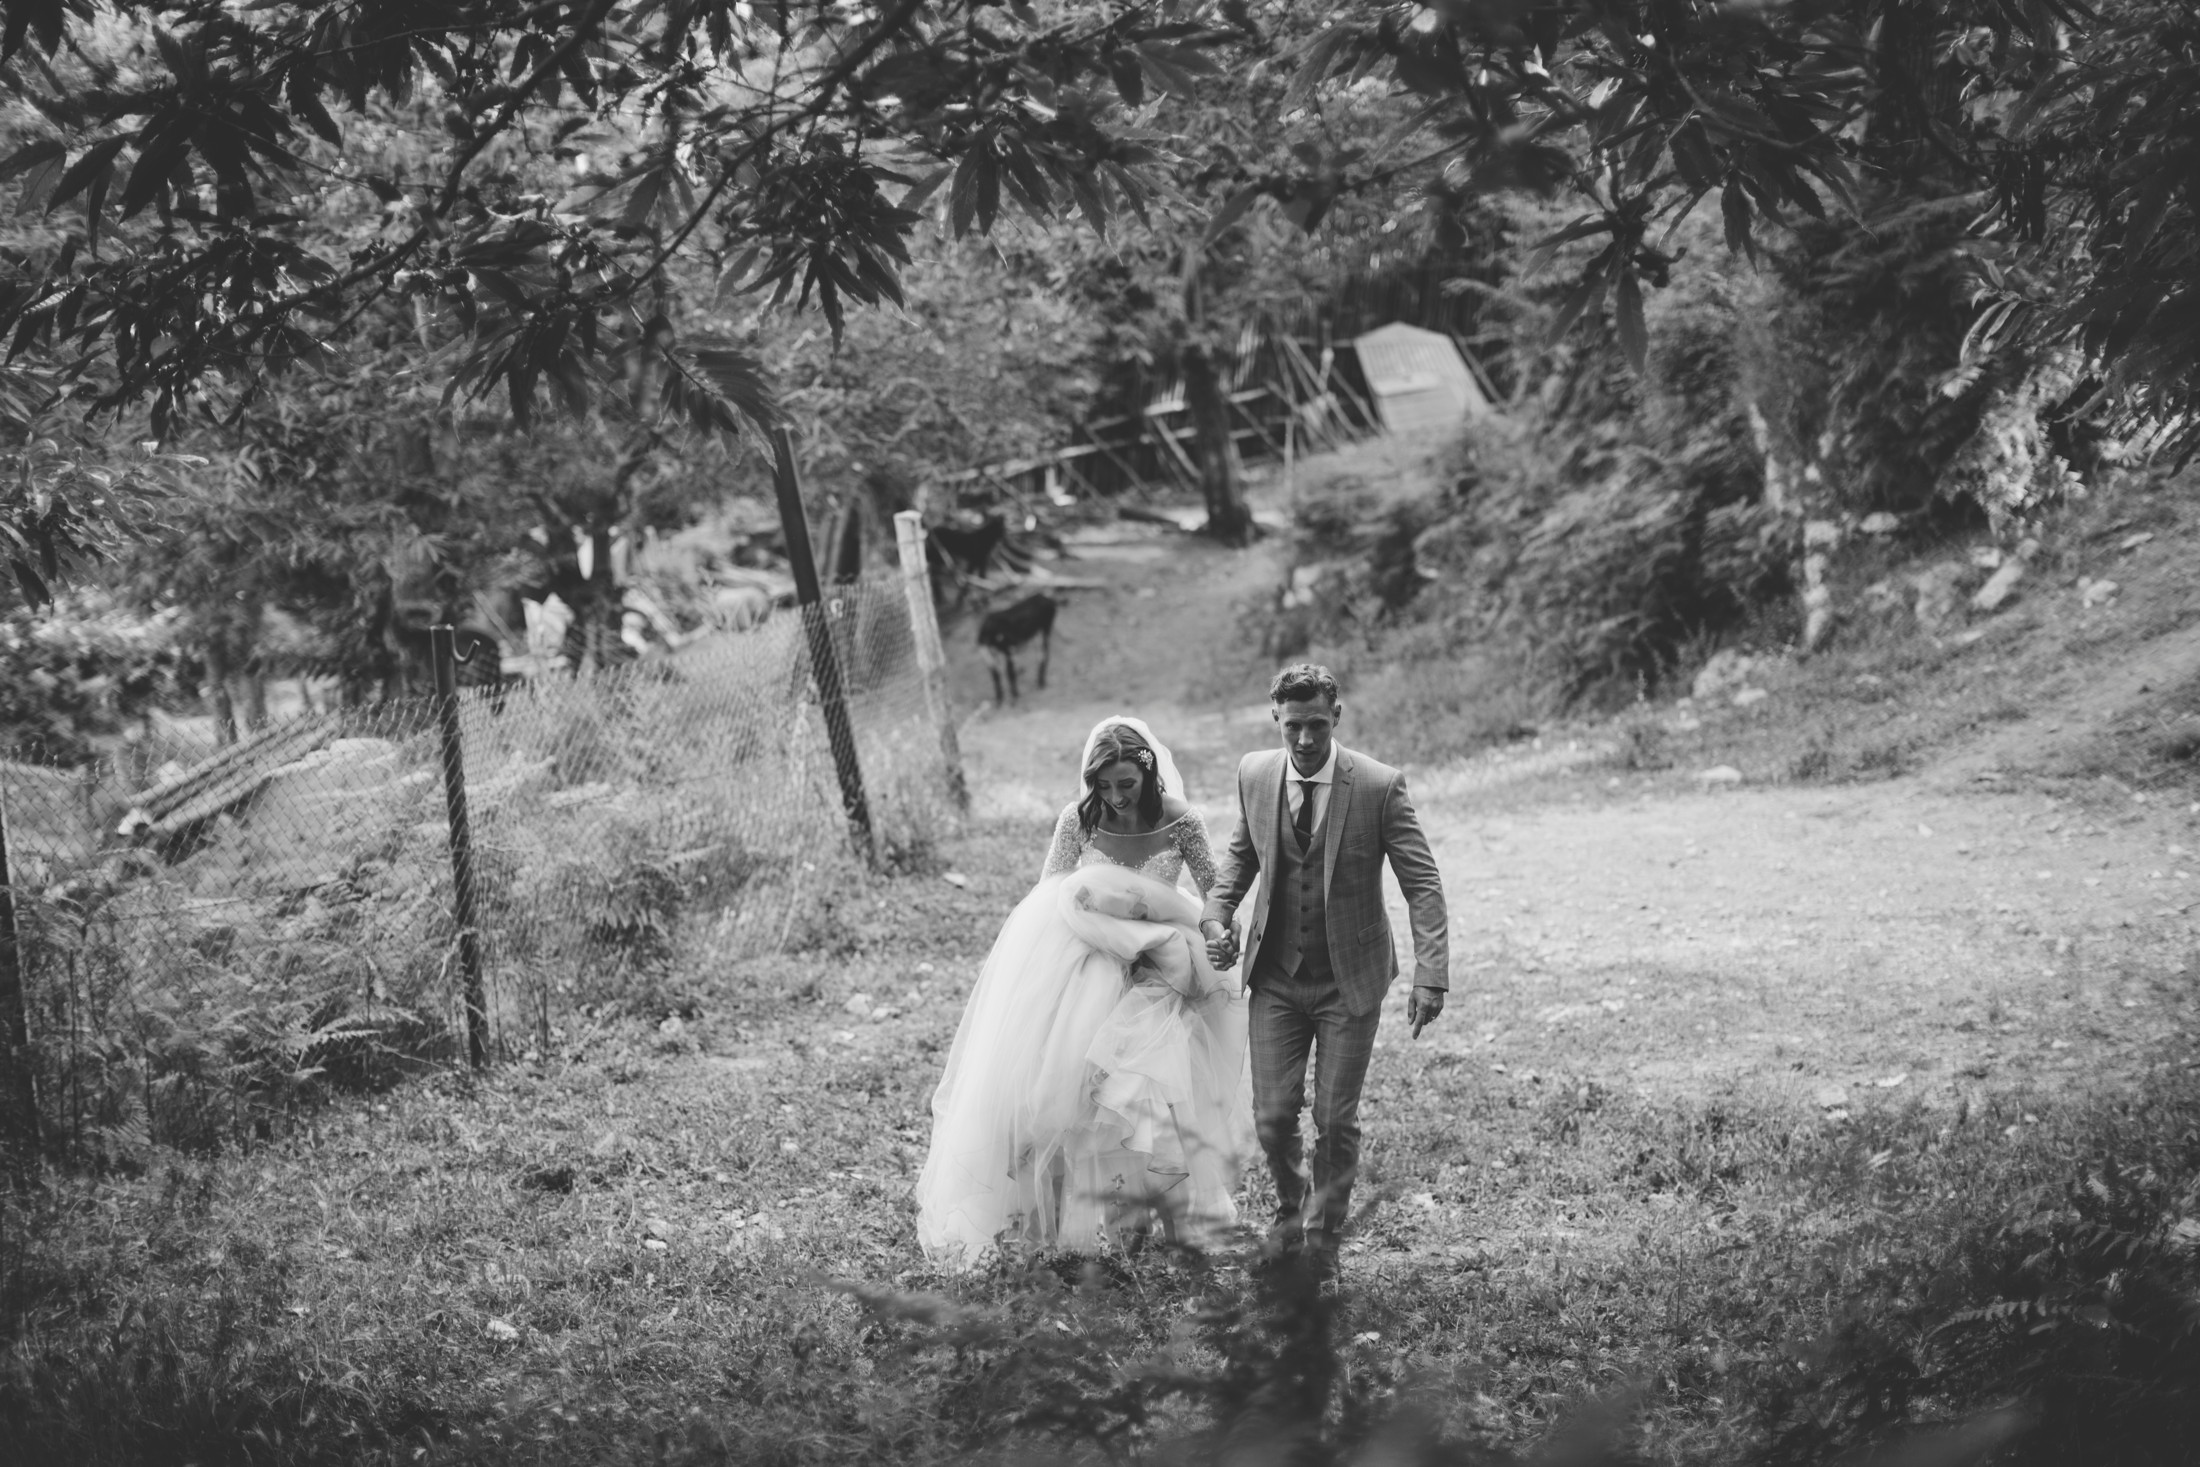 ravello wedding bride and groom walking hand by hand in a forest